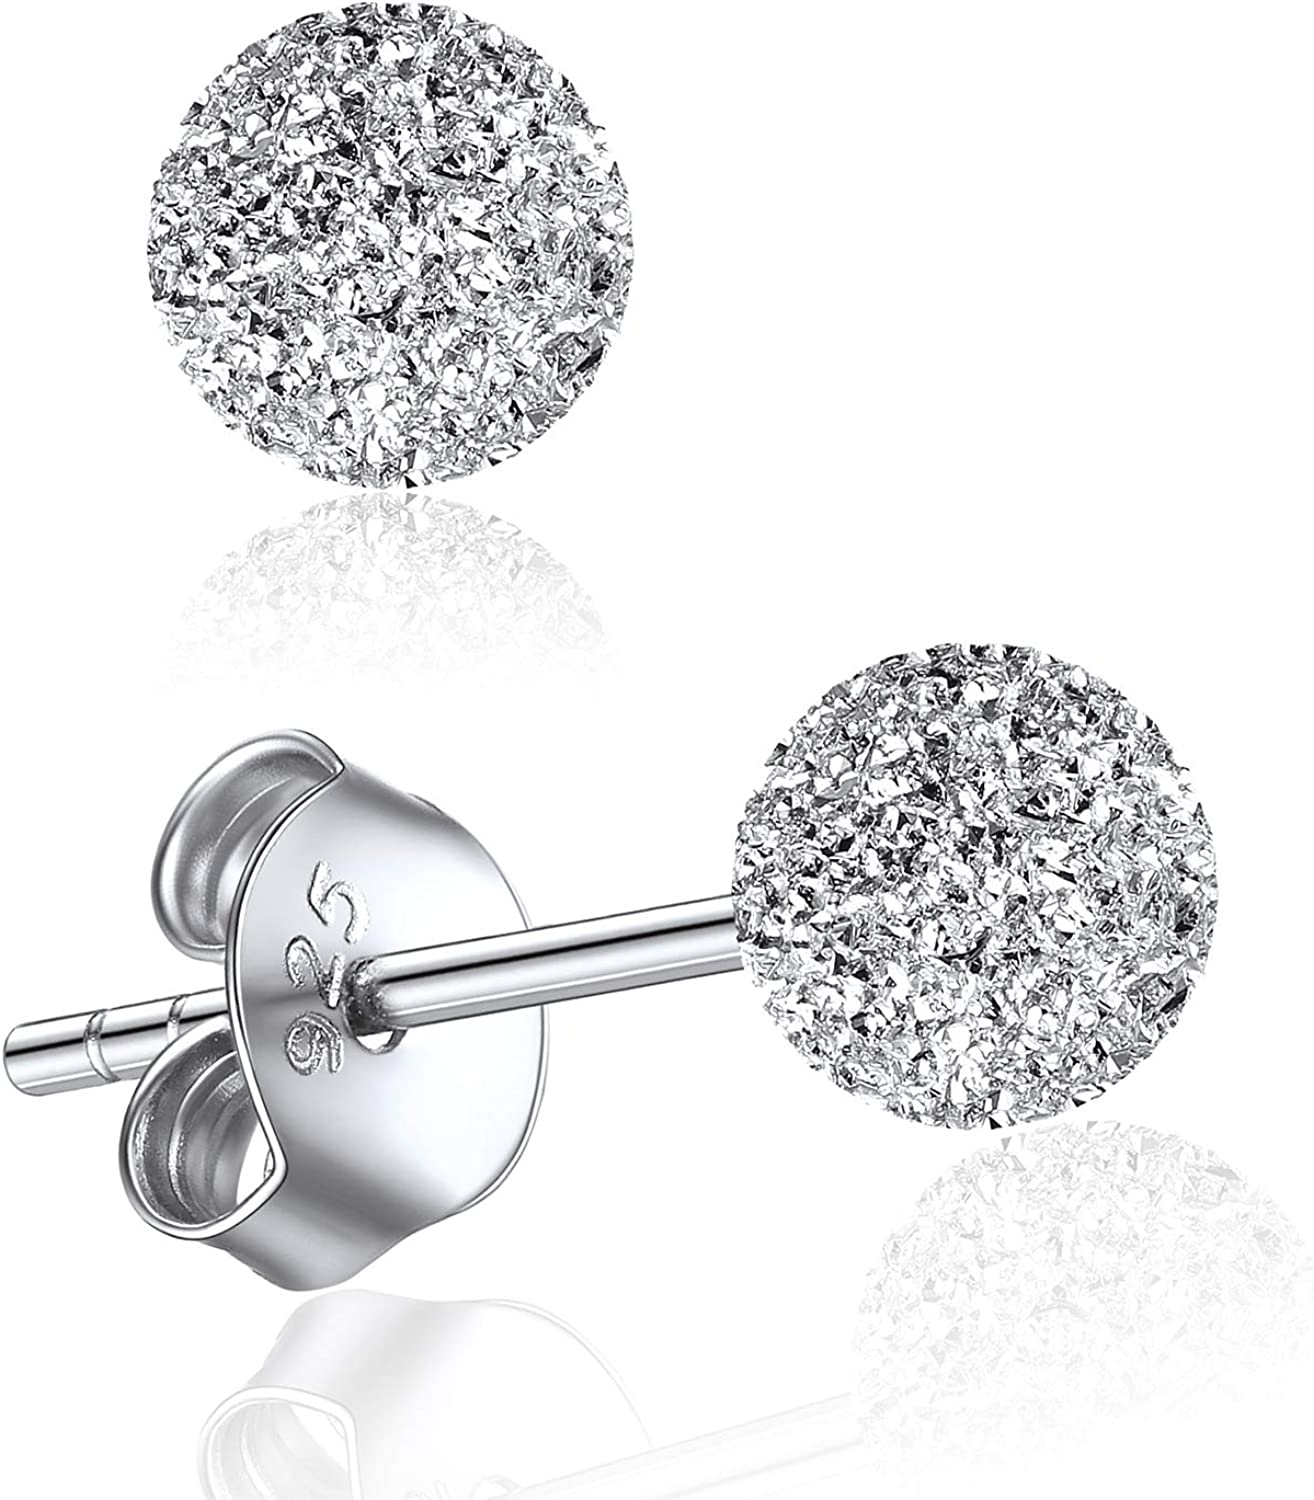 Sale ChicSilver Hypoallergenic 925 Sterling Silver security 3 7MM Ball Stud 5